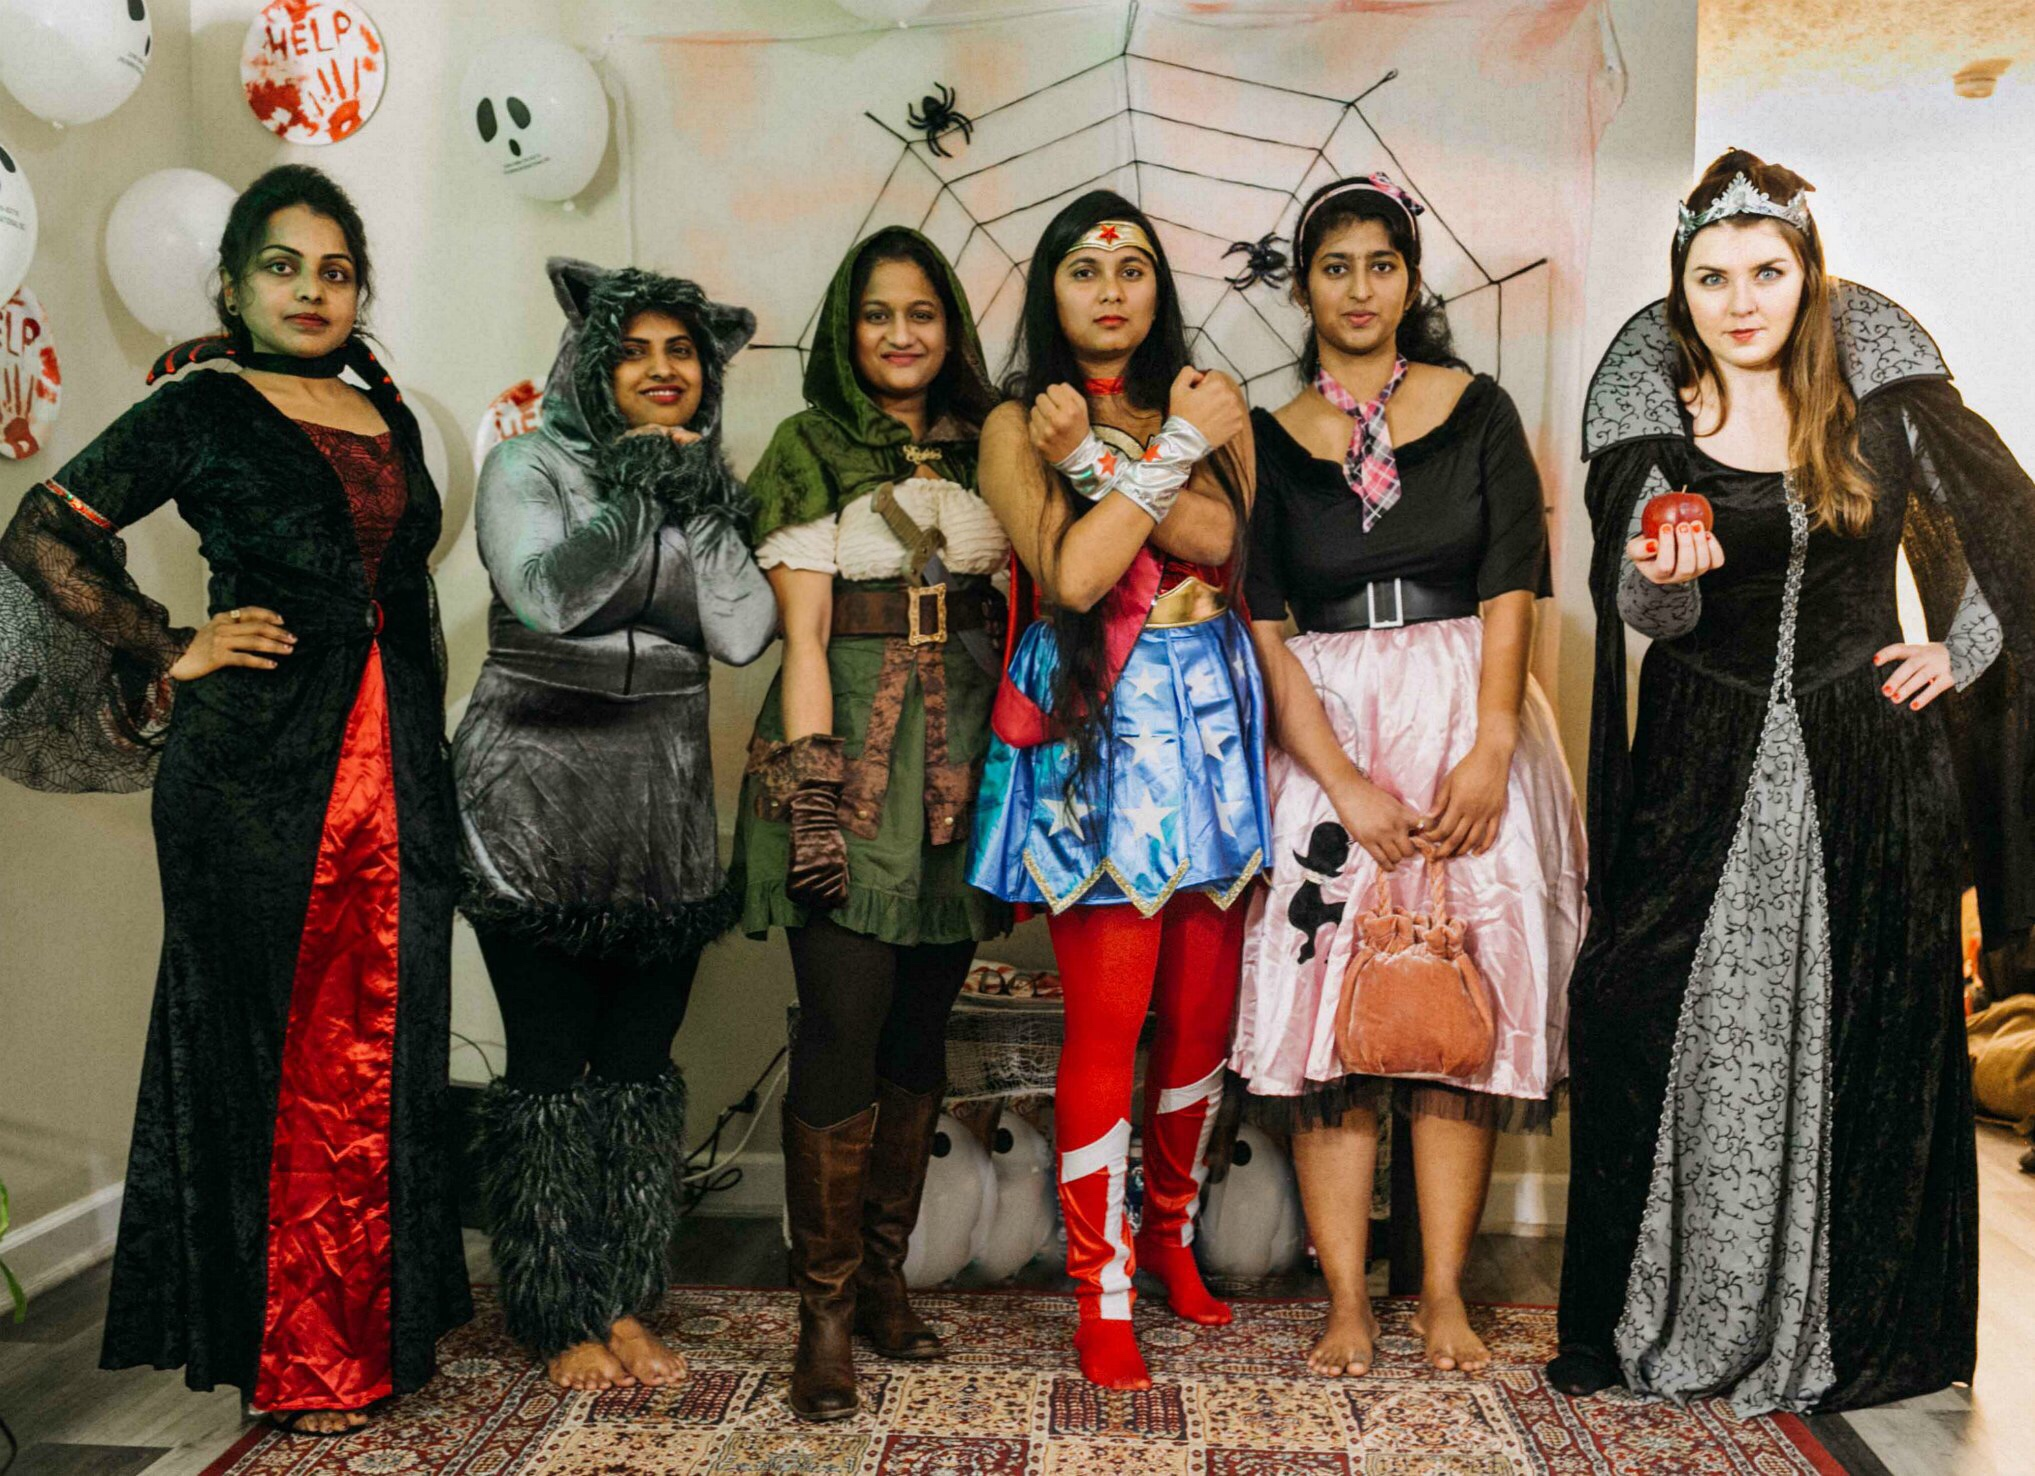 Top 5 Scary Fun Halloween Bachelorette Party Ideas